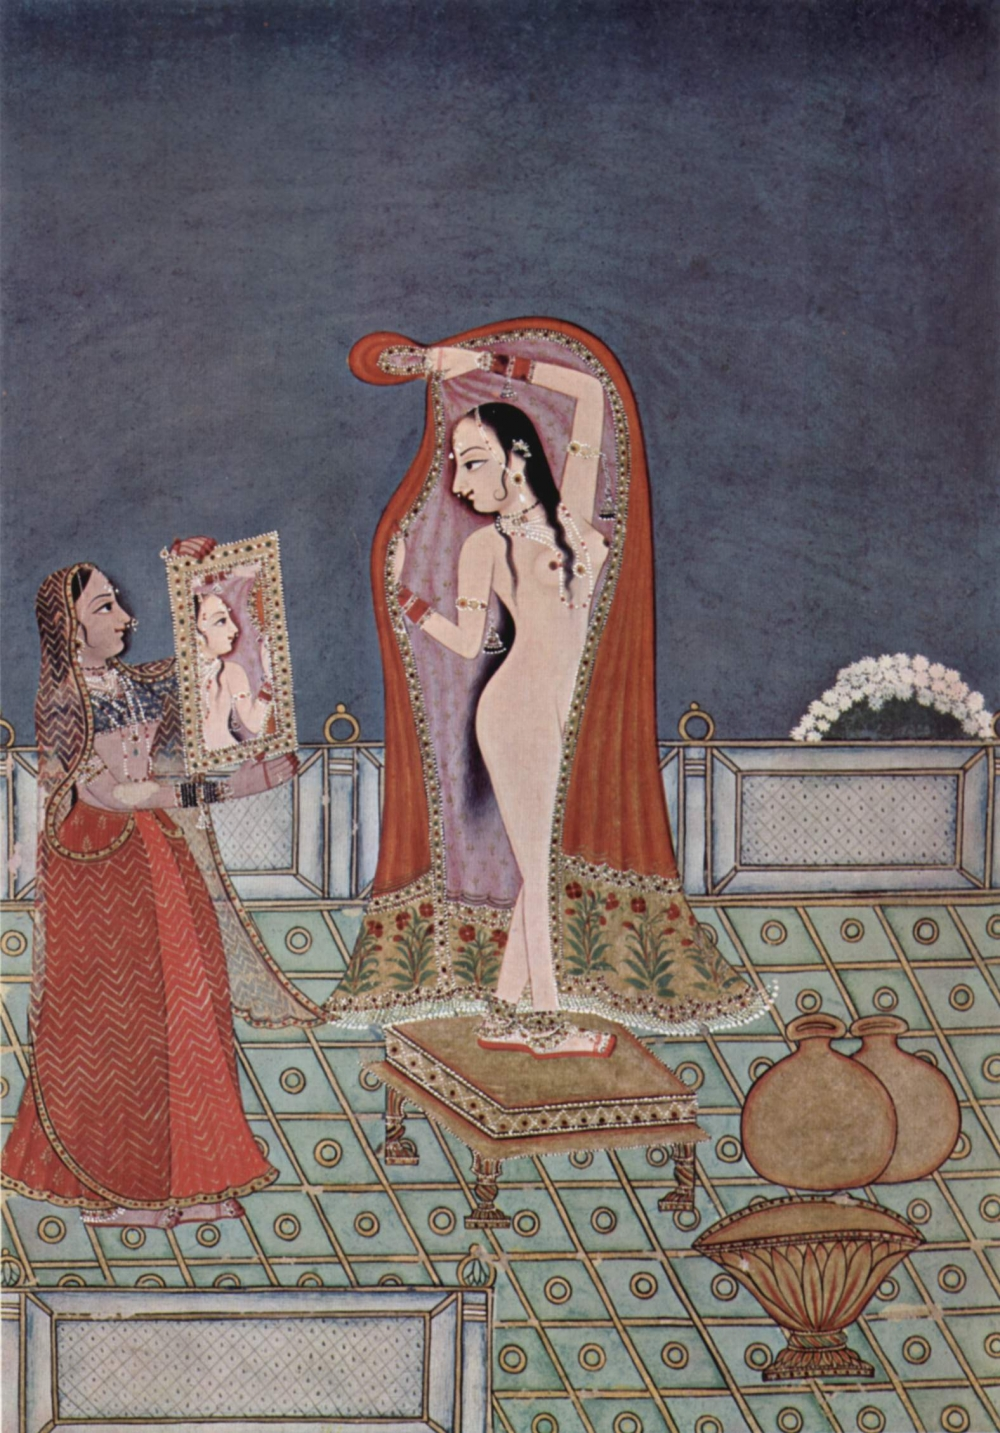 A ragmala series painting showing a woman after her bath, 1775 (Courtesy: Allahabad Museum/Wikimedia Commons)